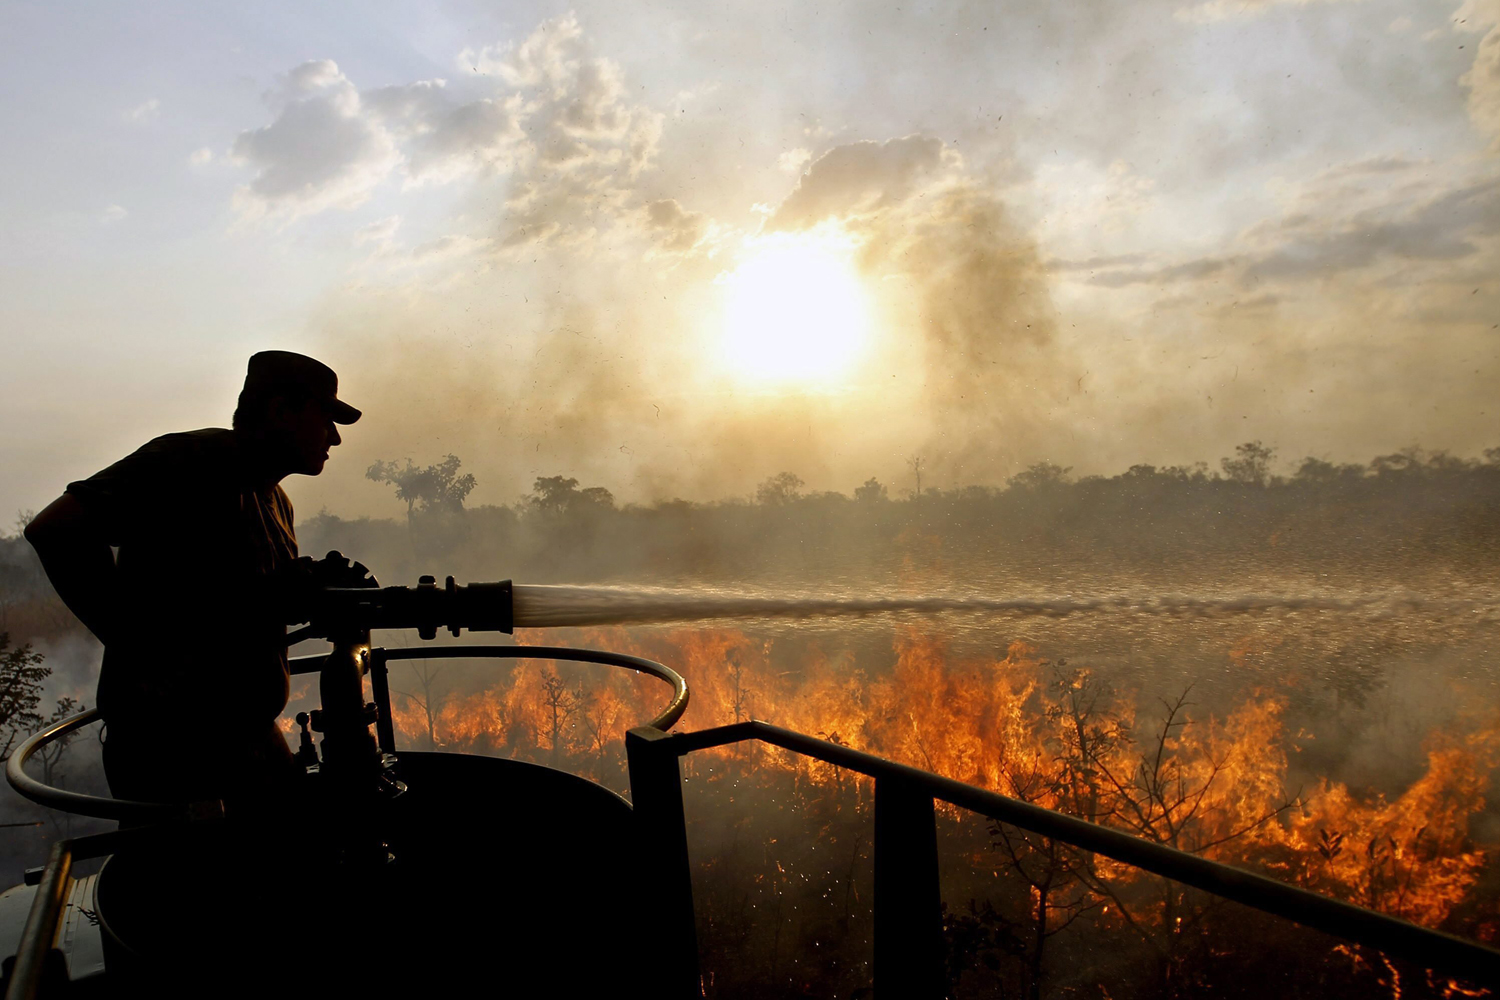 Sept. 1, 2014. An army soldier tries to extinguish a fire at the park Floresta Nacional in Brasilia, Brazil. Six teams, a helicopter and an aircraft were mobilized to contain the fire. The Brazilian capital suffers of current low humidity and a period of drought.